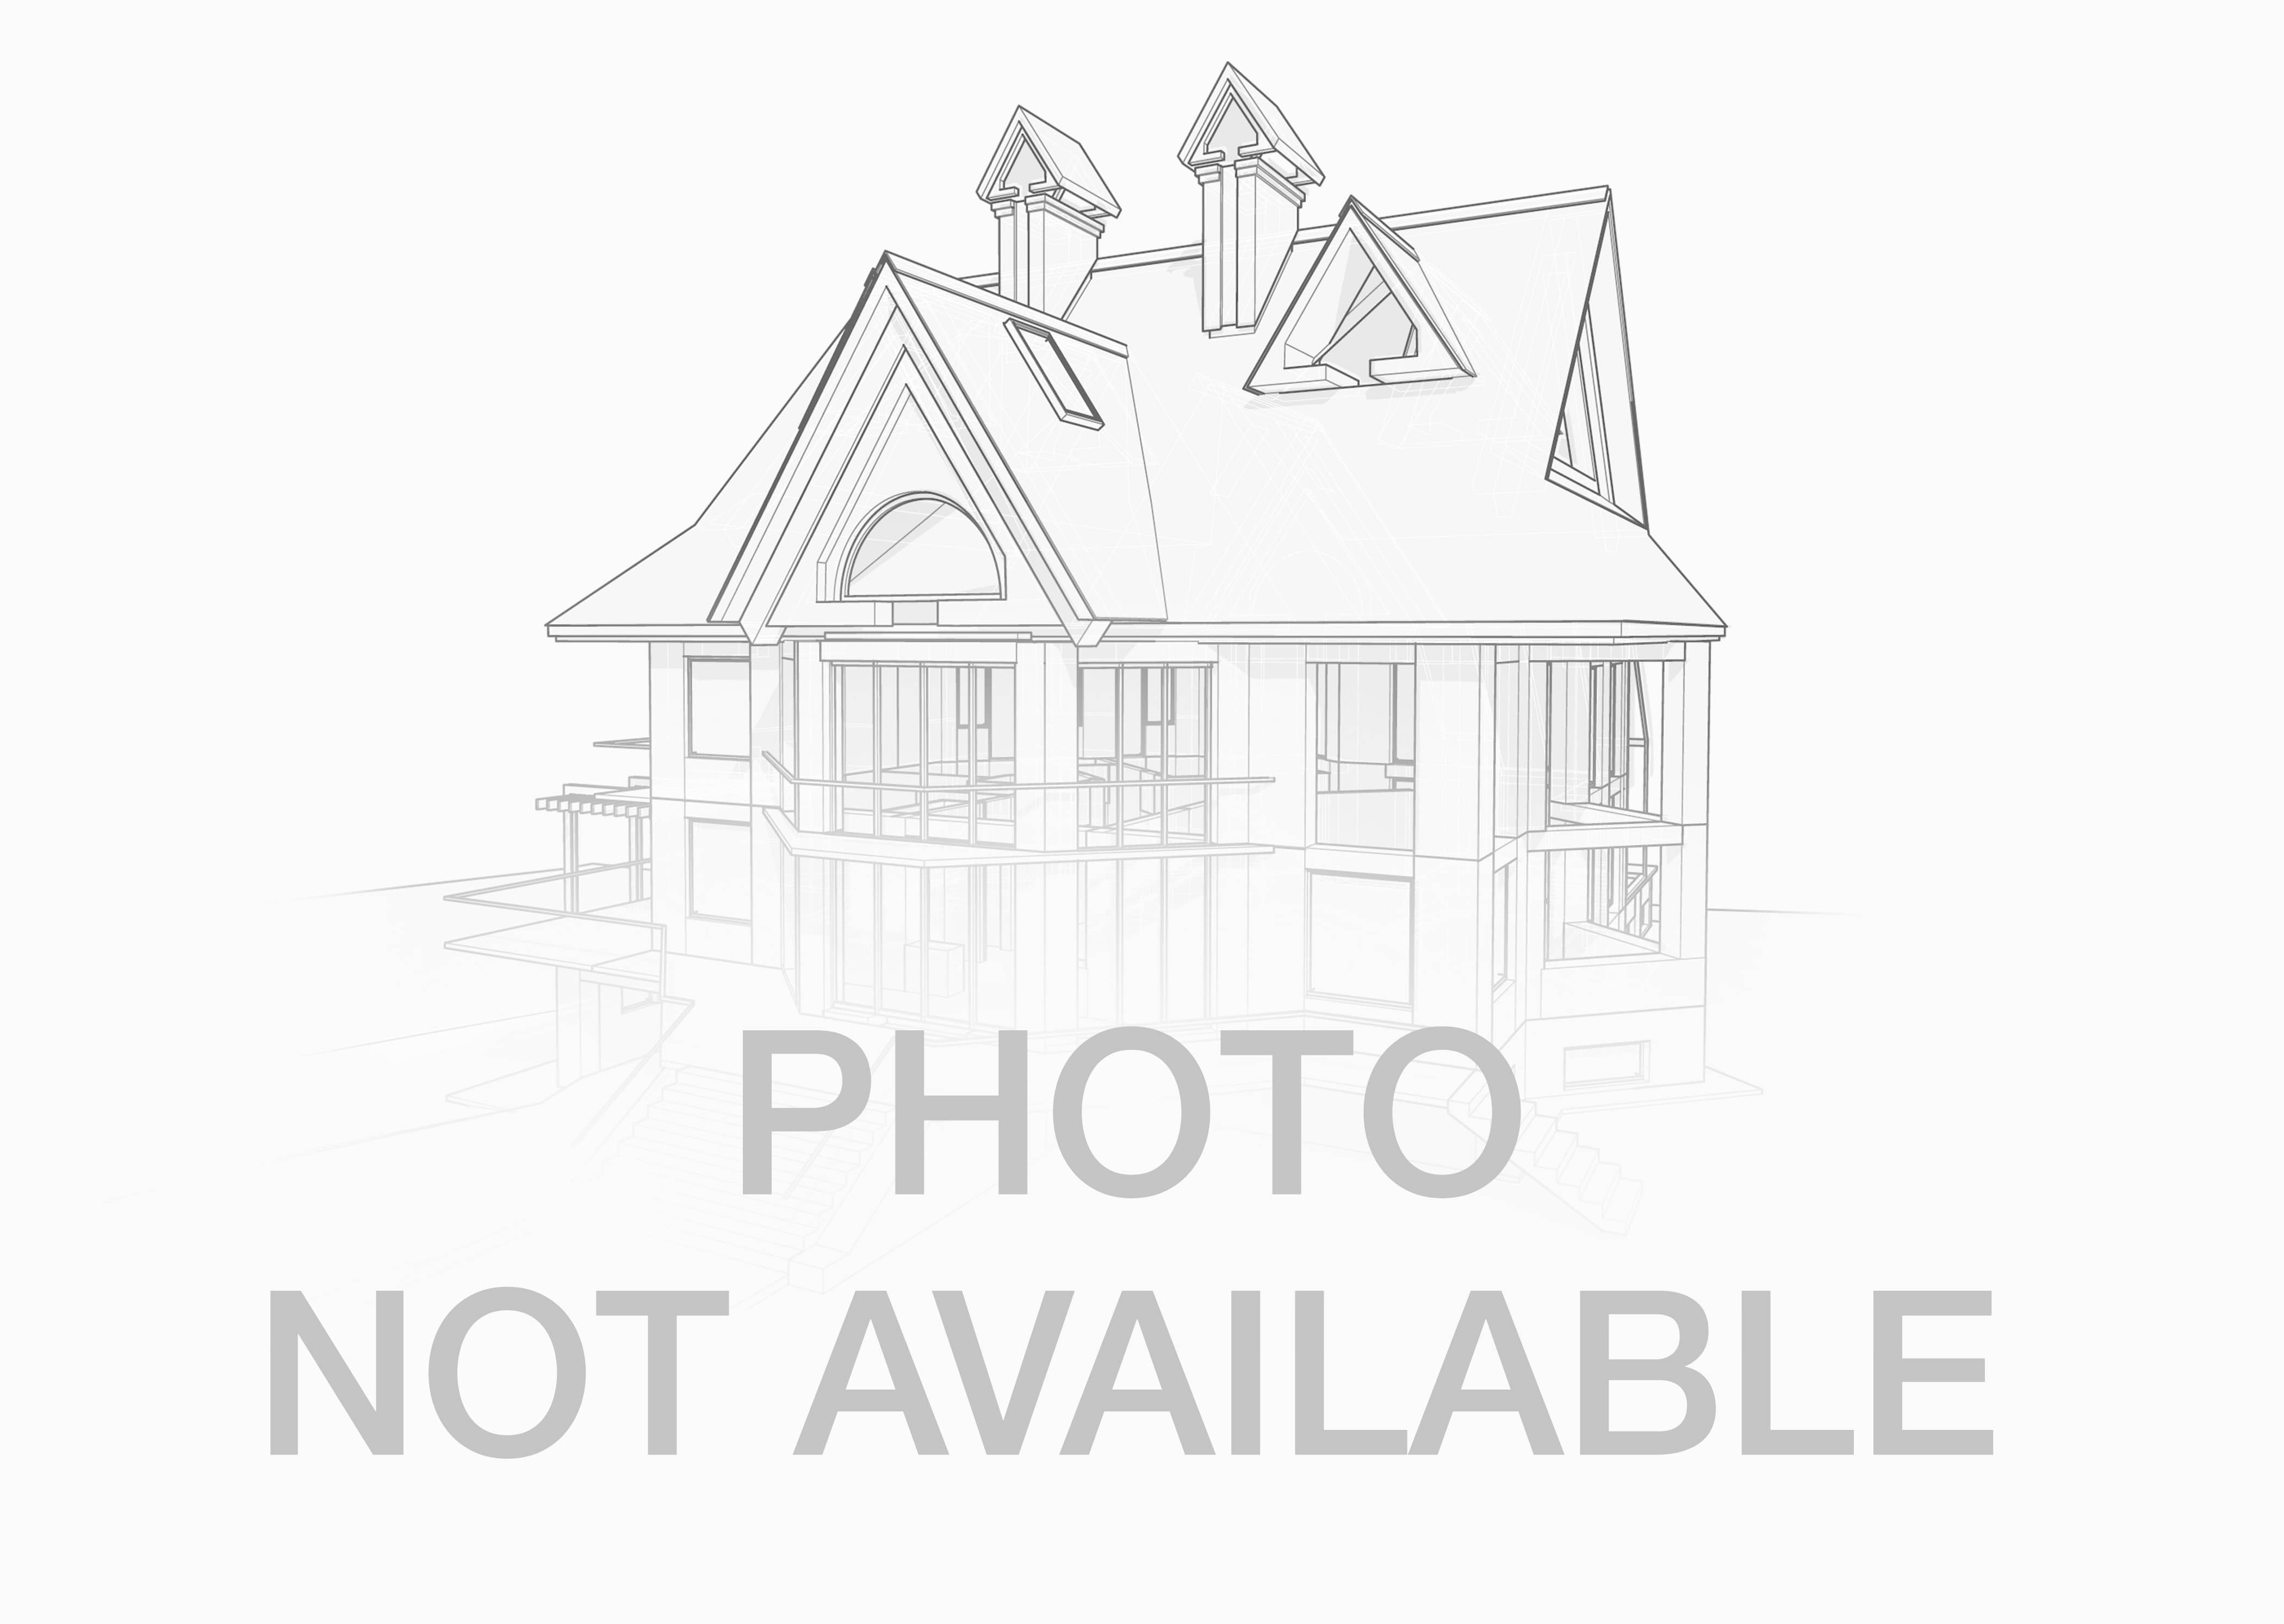 Tabor City Nc Map.5101 Swamp Fox Highway E Tabor City Nc 28463 Mls Id 100107718